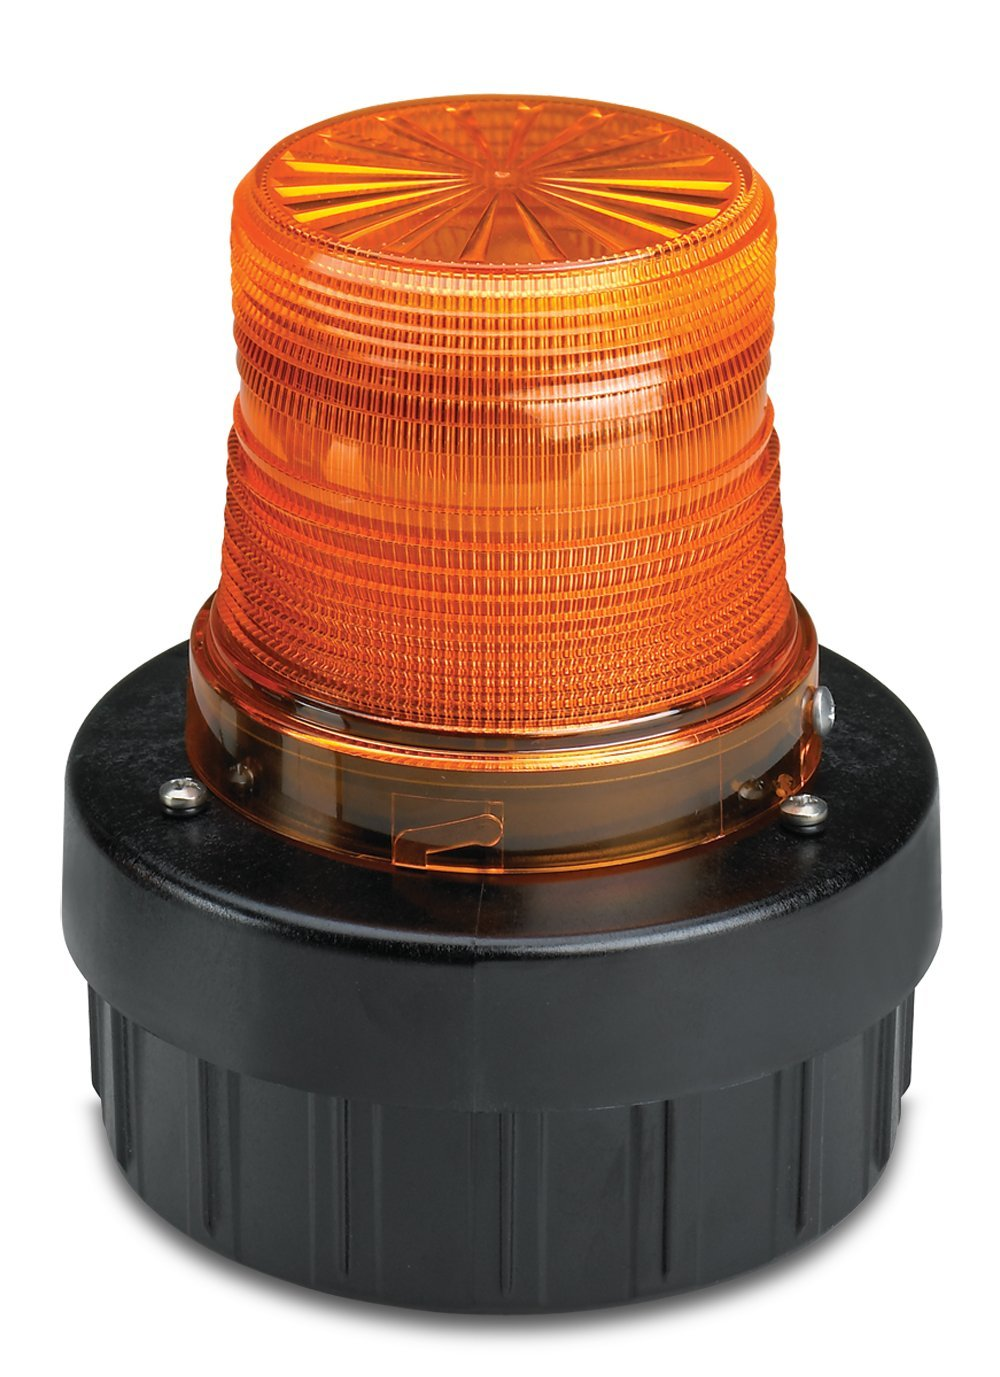 Federal Signal AV1-LED-024A LED Flashing Combination Audible/Visual Signal, Pipe/Surface Mount, 24 VDC, Amber